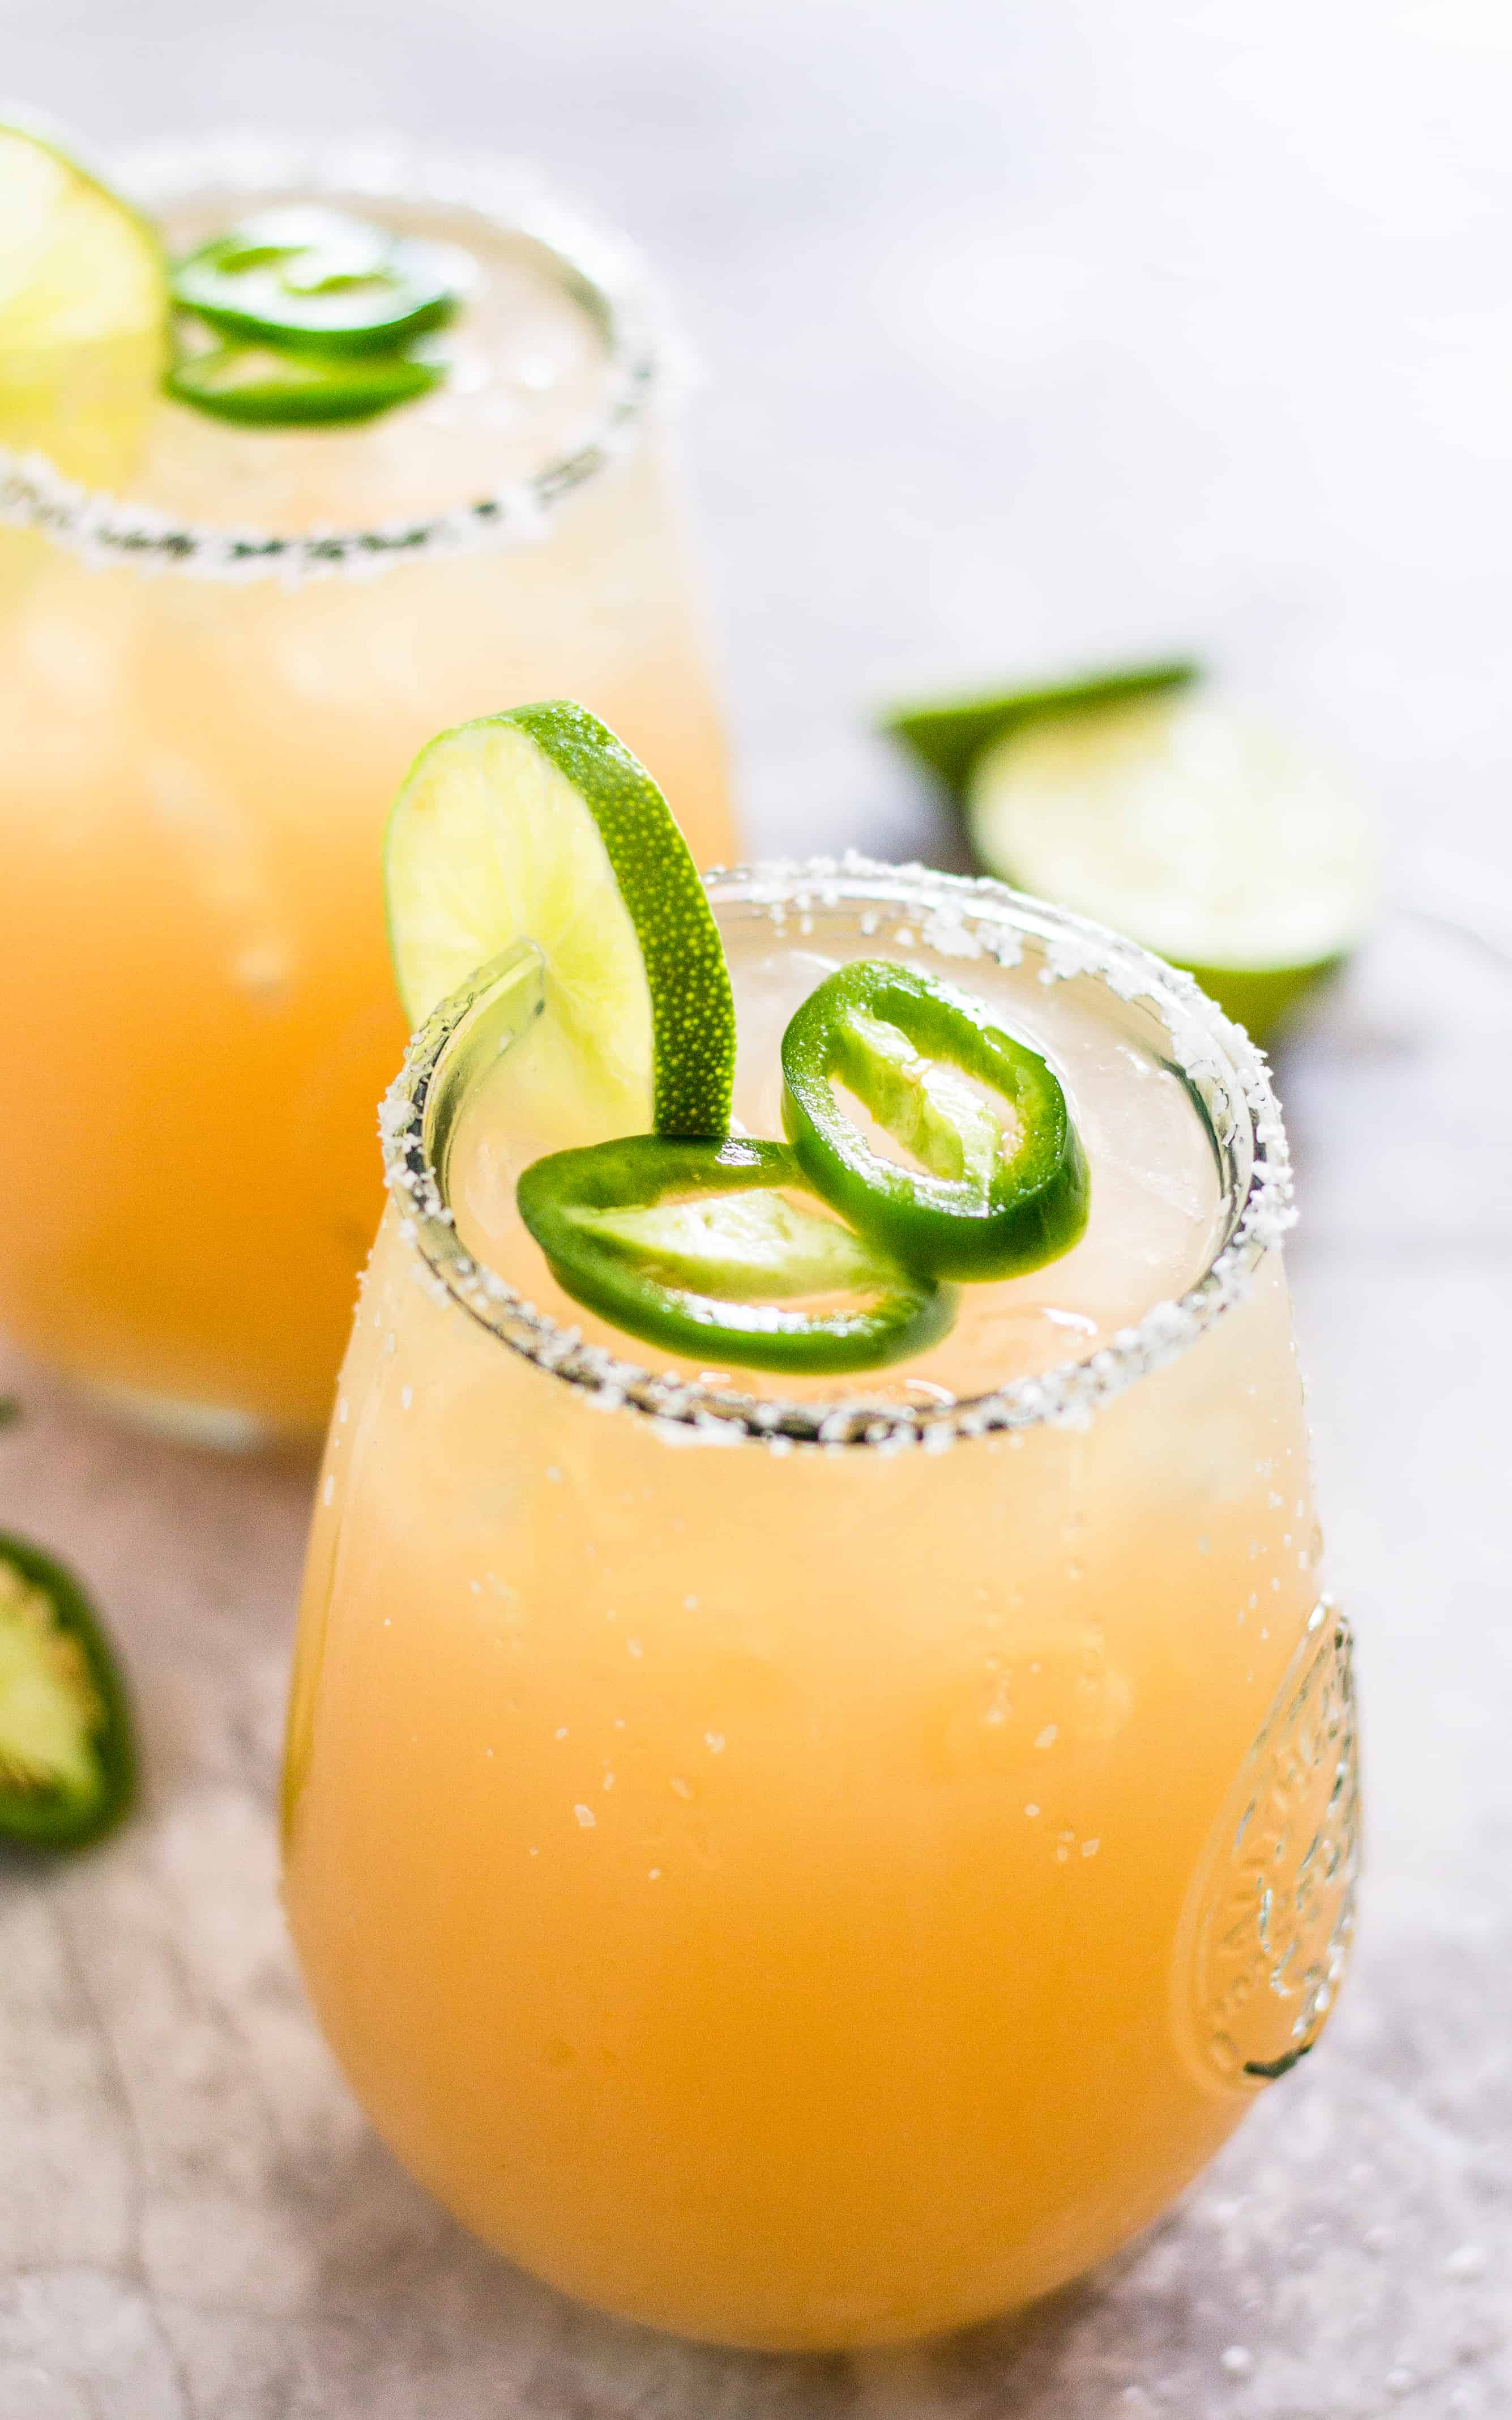 Sparkling Jalapeño Paloma Cocktail | Take Two Tapas | #Paloma #SparklingWaterCocktail #Jalapeño #PalomaRecipe #TequilaCocktail #GrapefruitRecipes